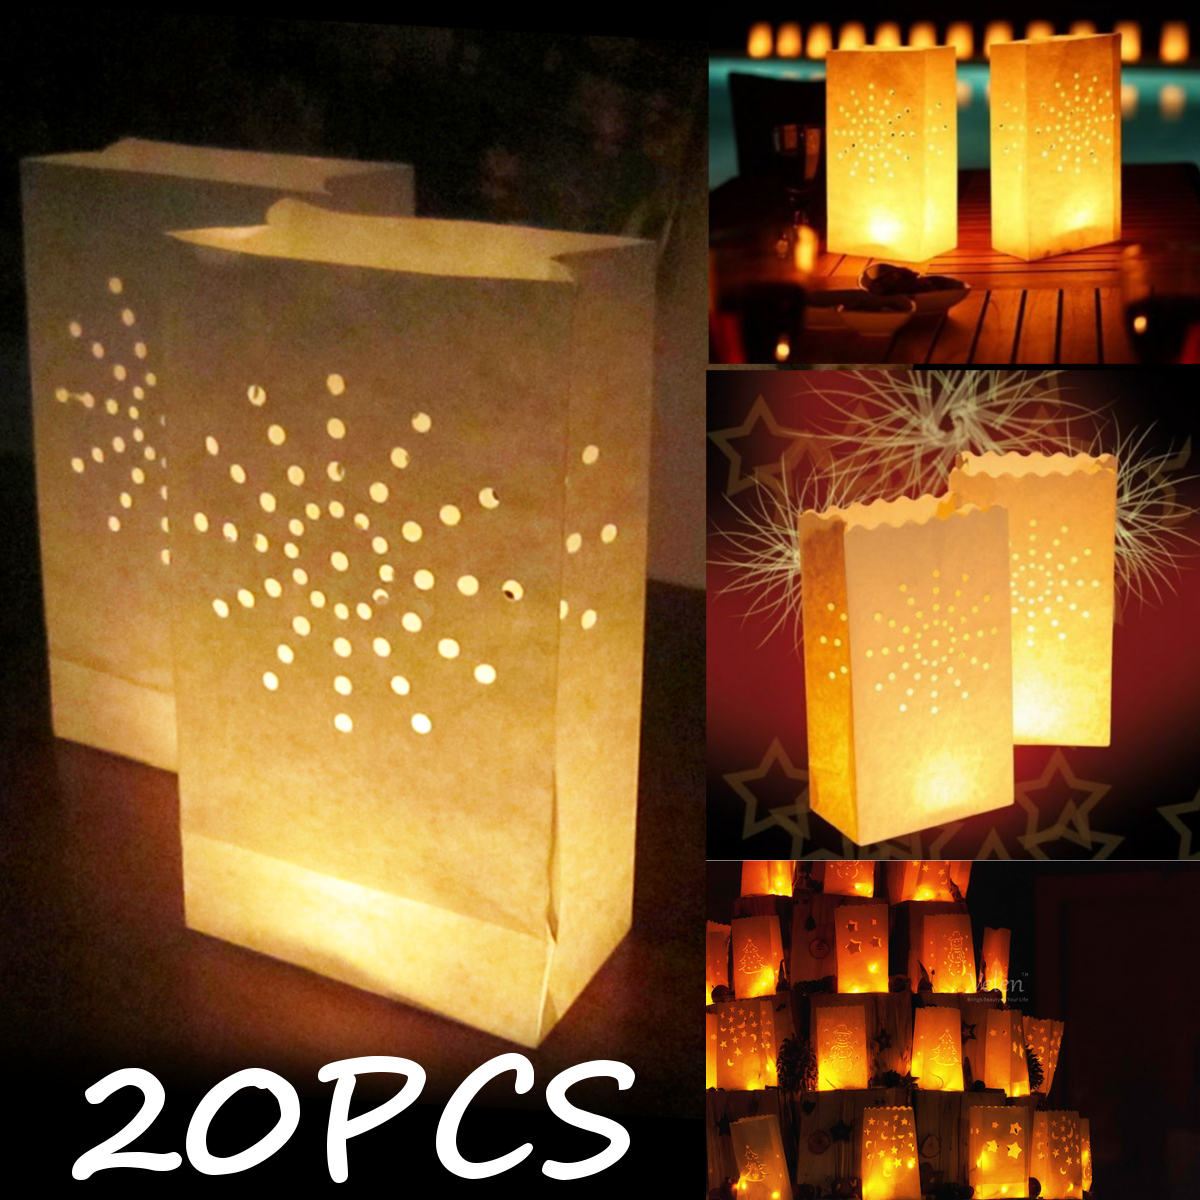 20Pcs White Night Paper Tealight Candle Bag Lantern Holder Party Wedding Decorations